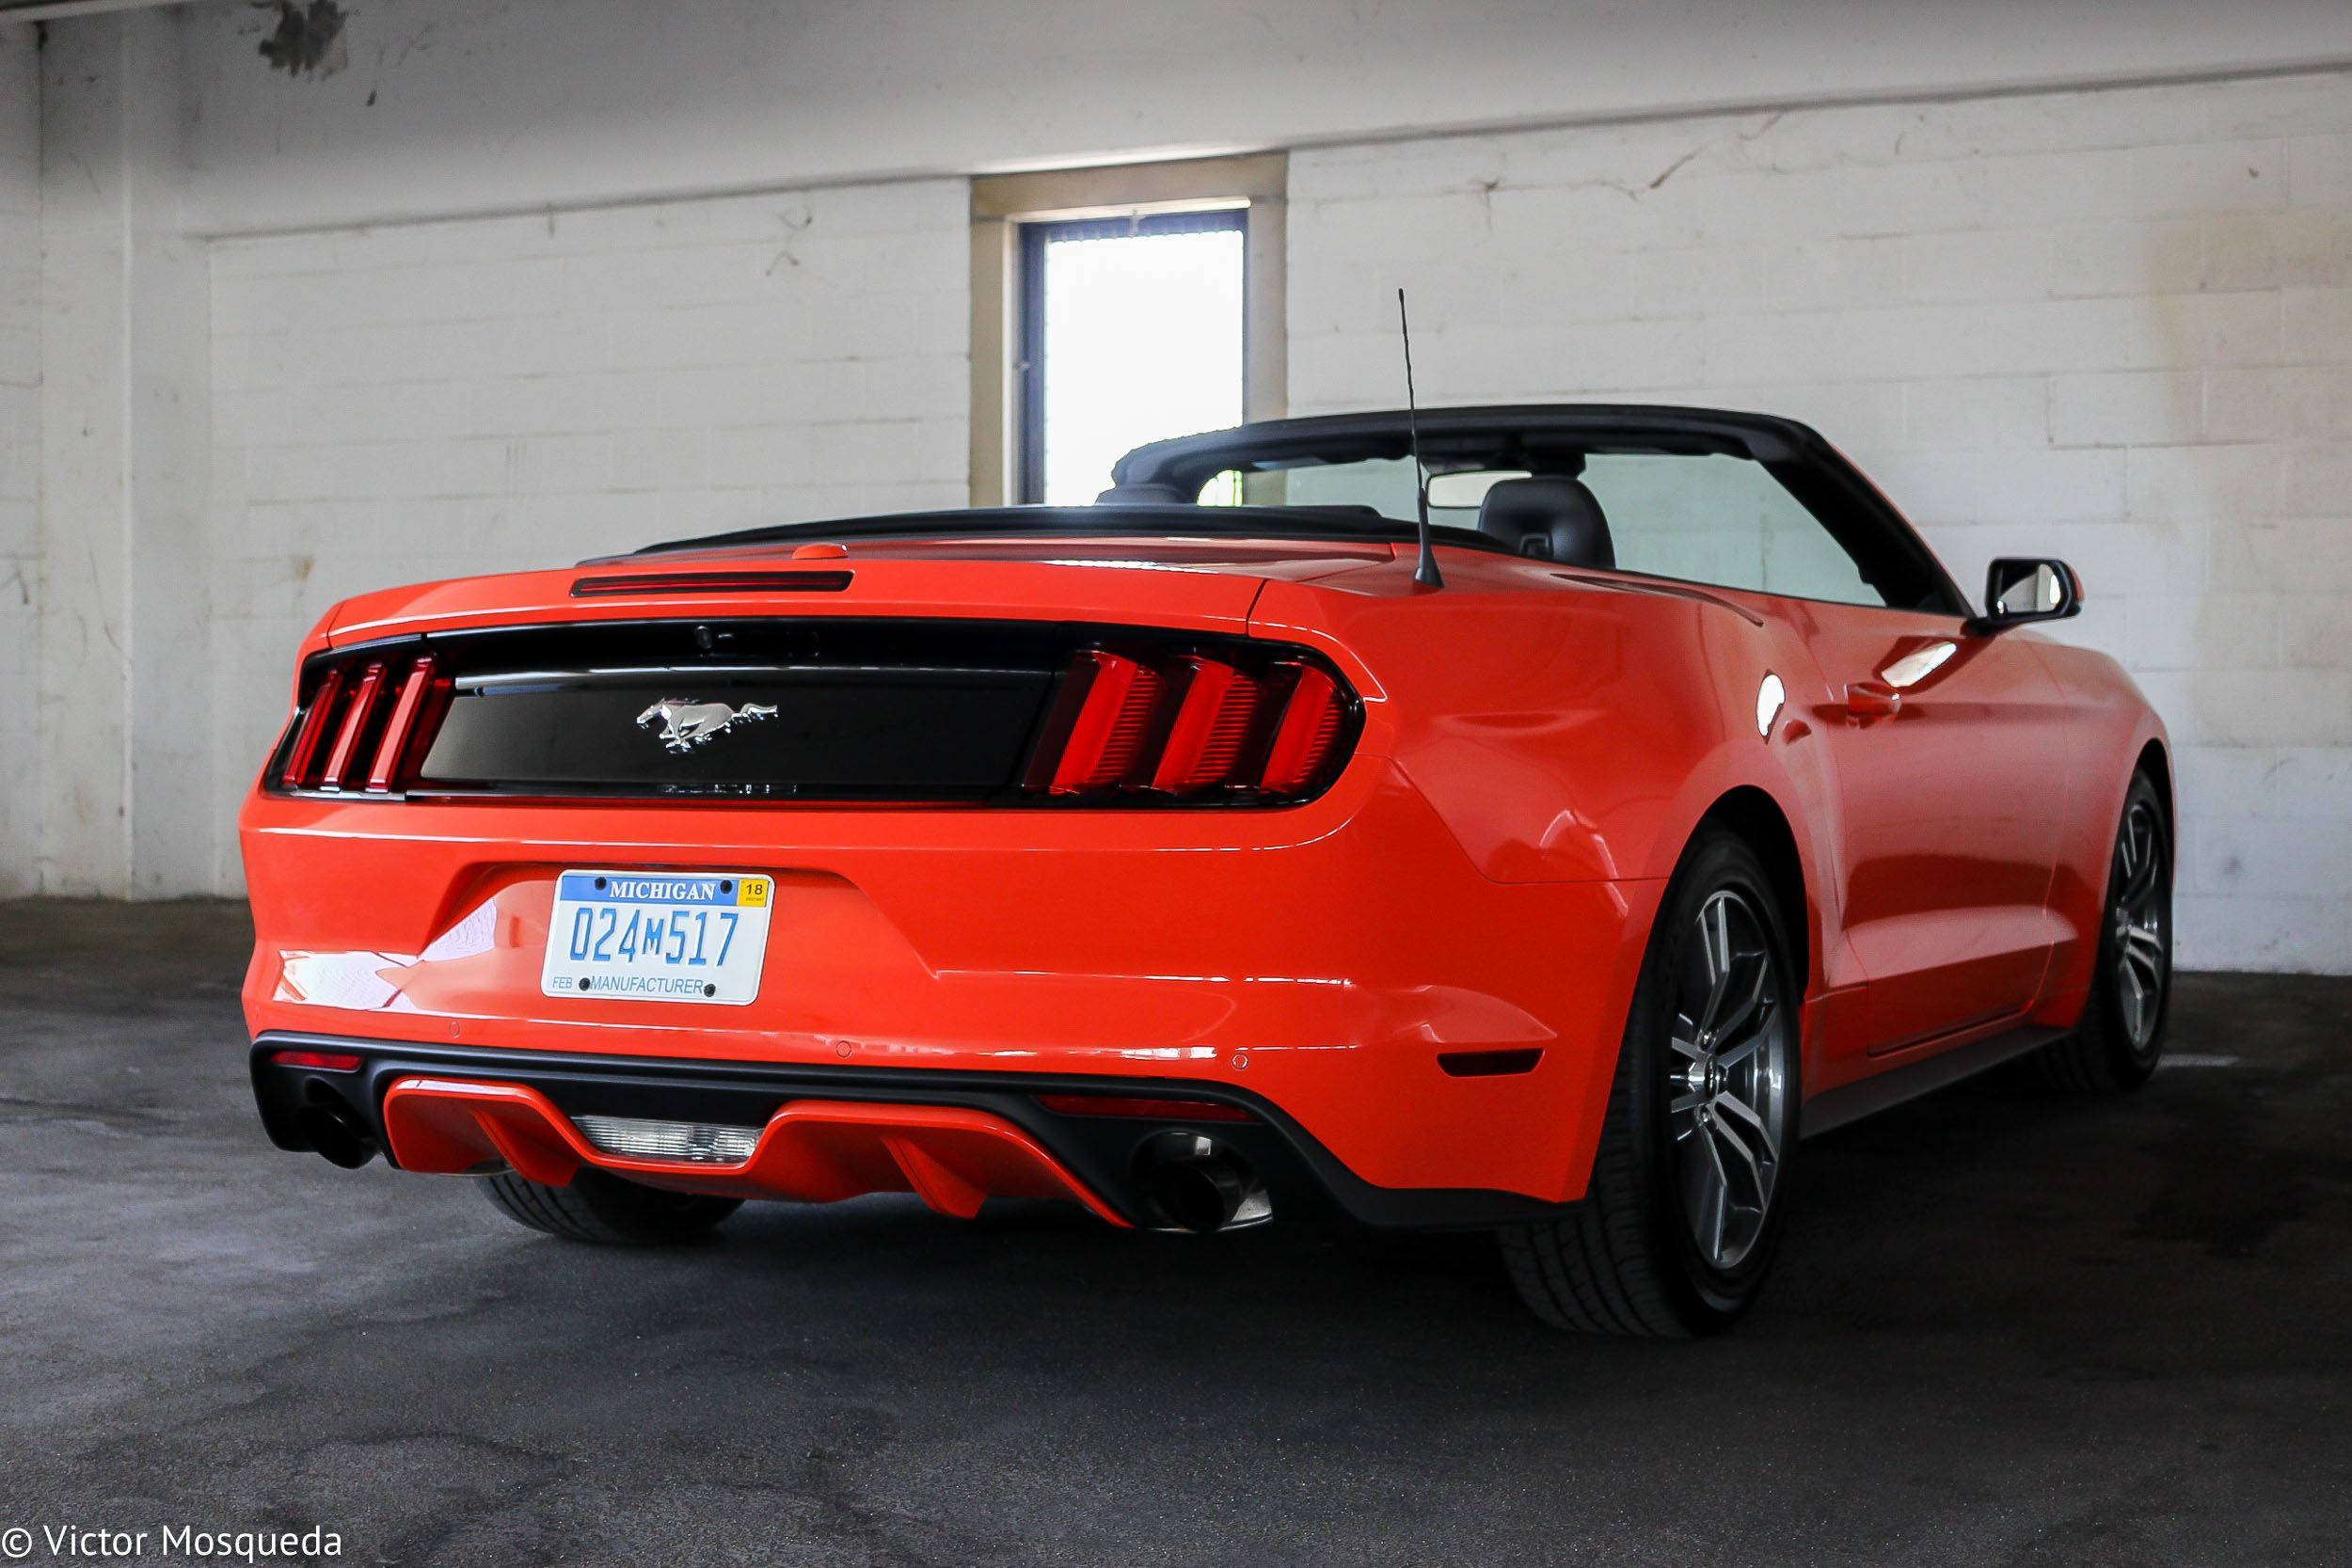 2015 Ford Mustang Convertible 2 3 Liter Ecoboost Cf Blog Ford